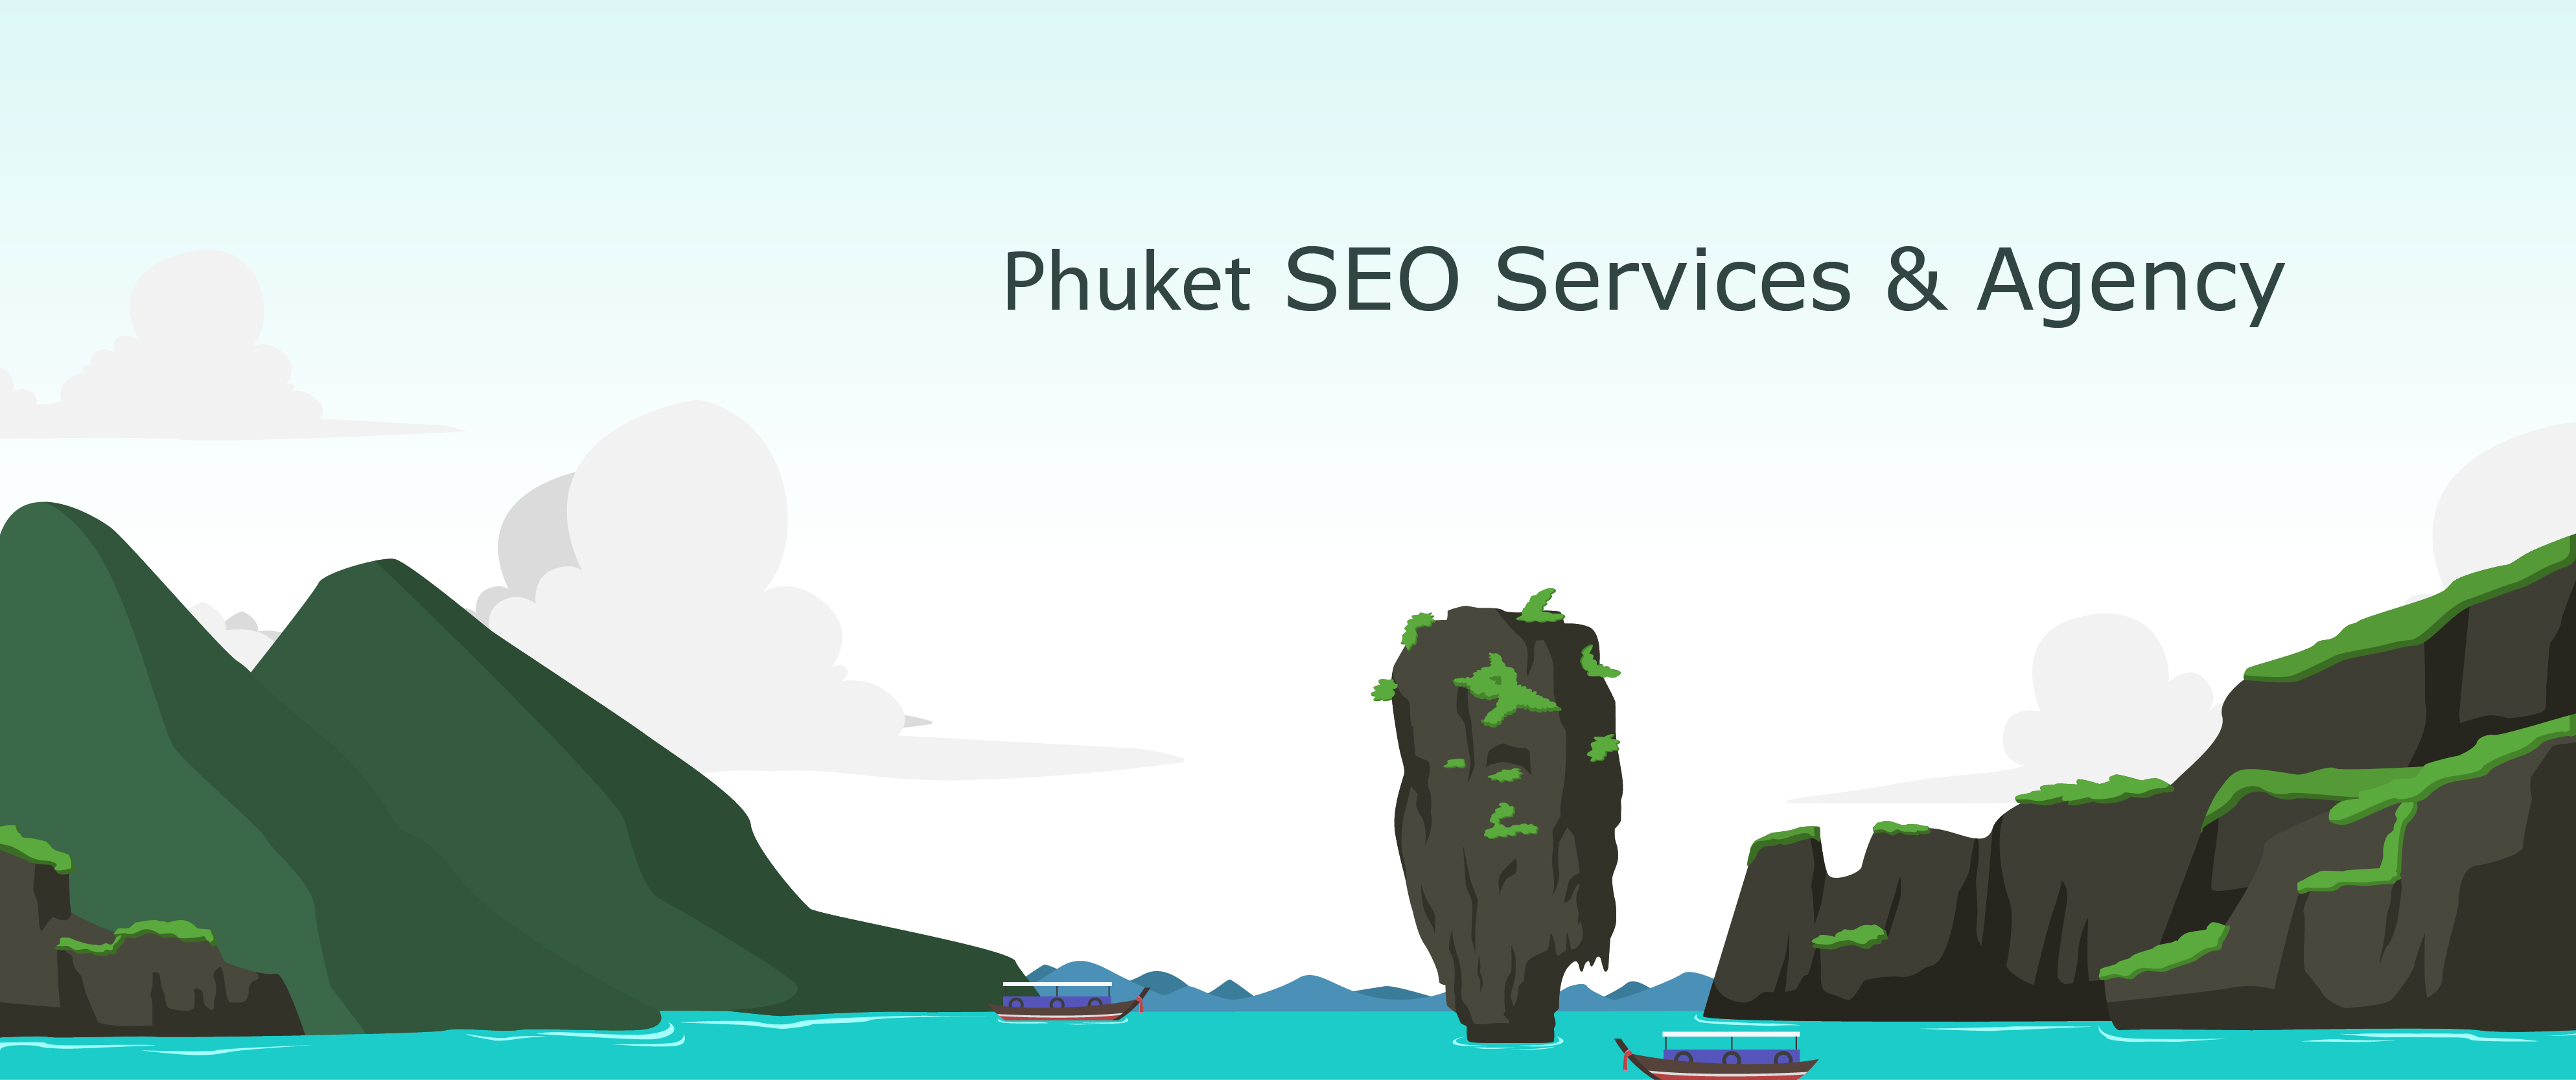 seo phuket and digital marketing agency 2bearsmarketing